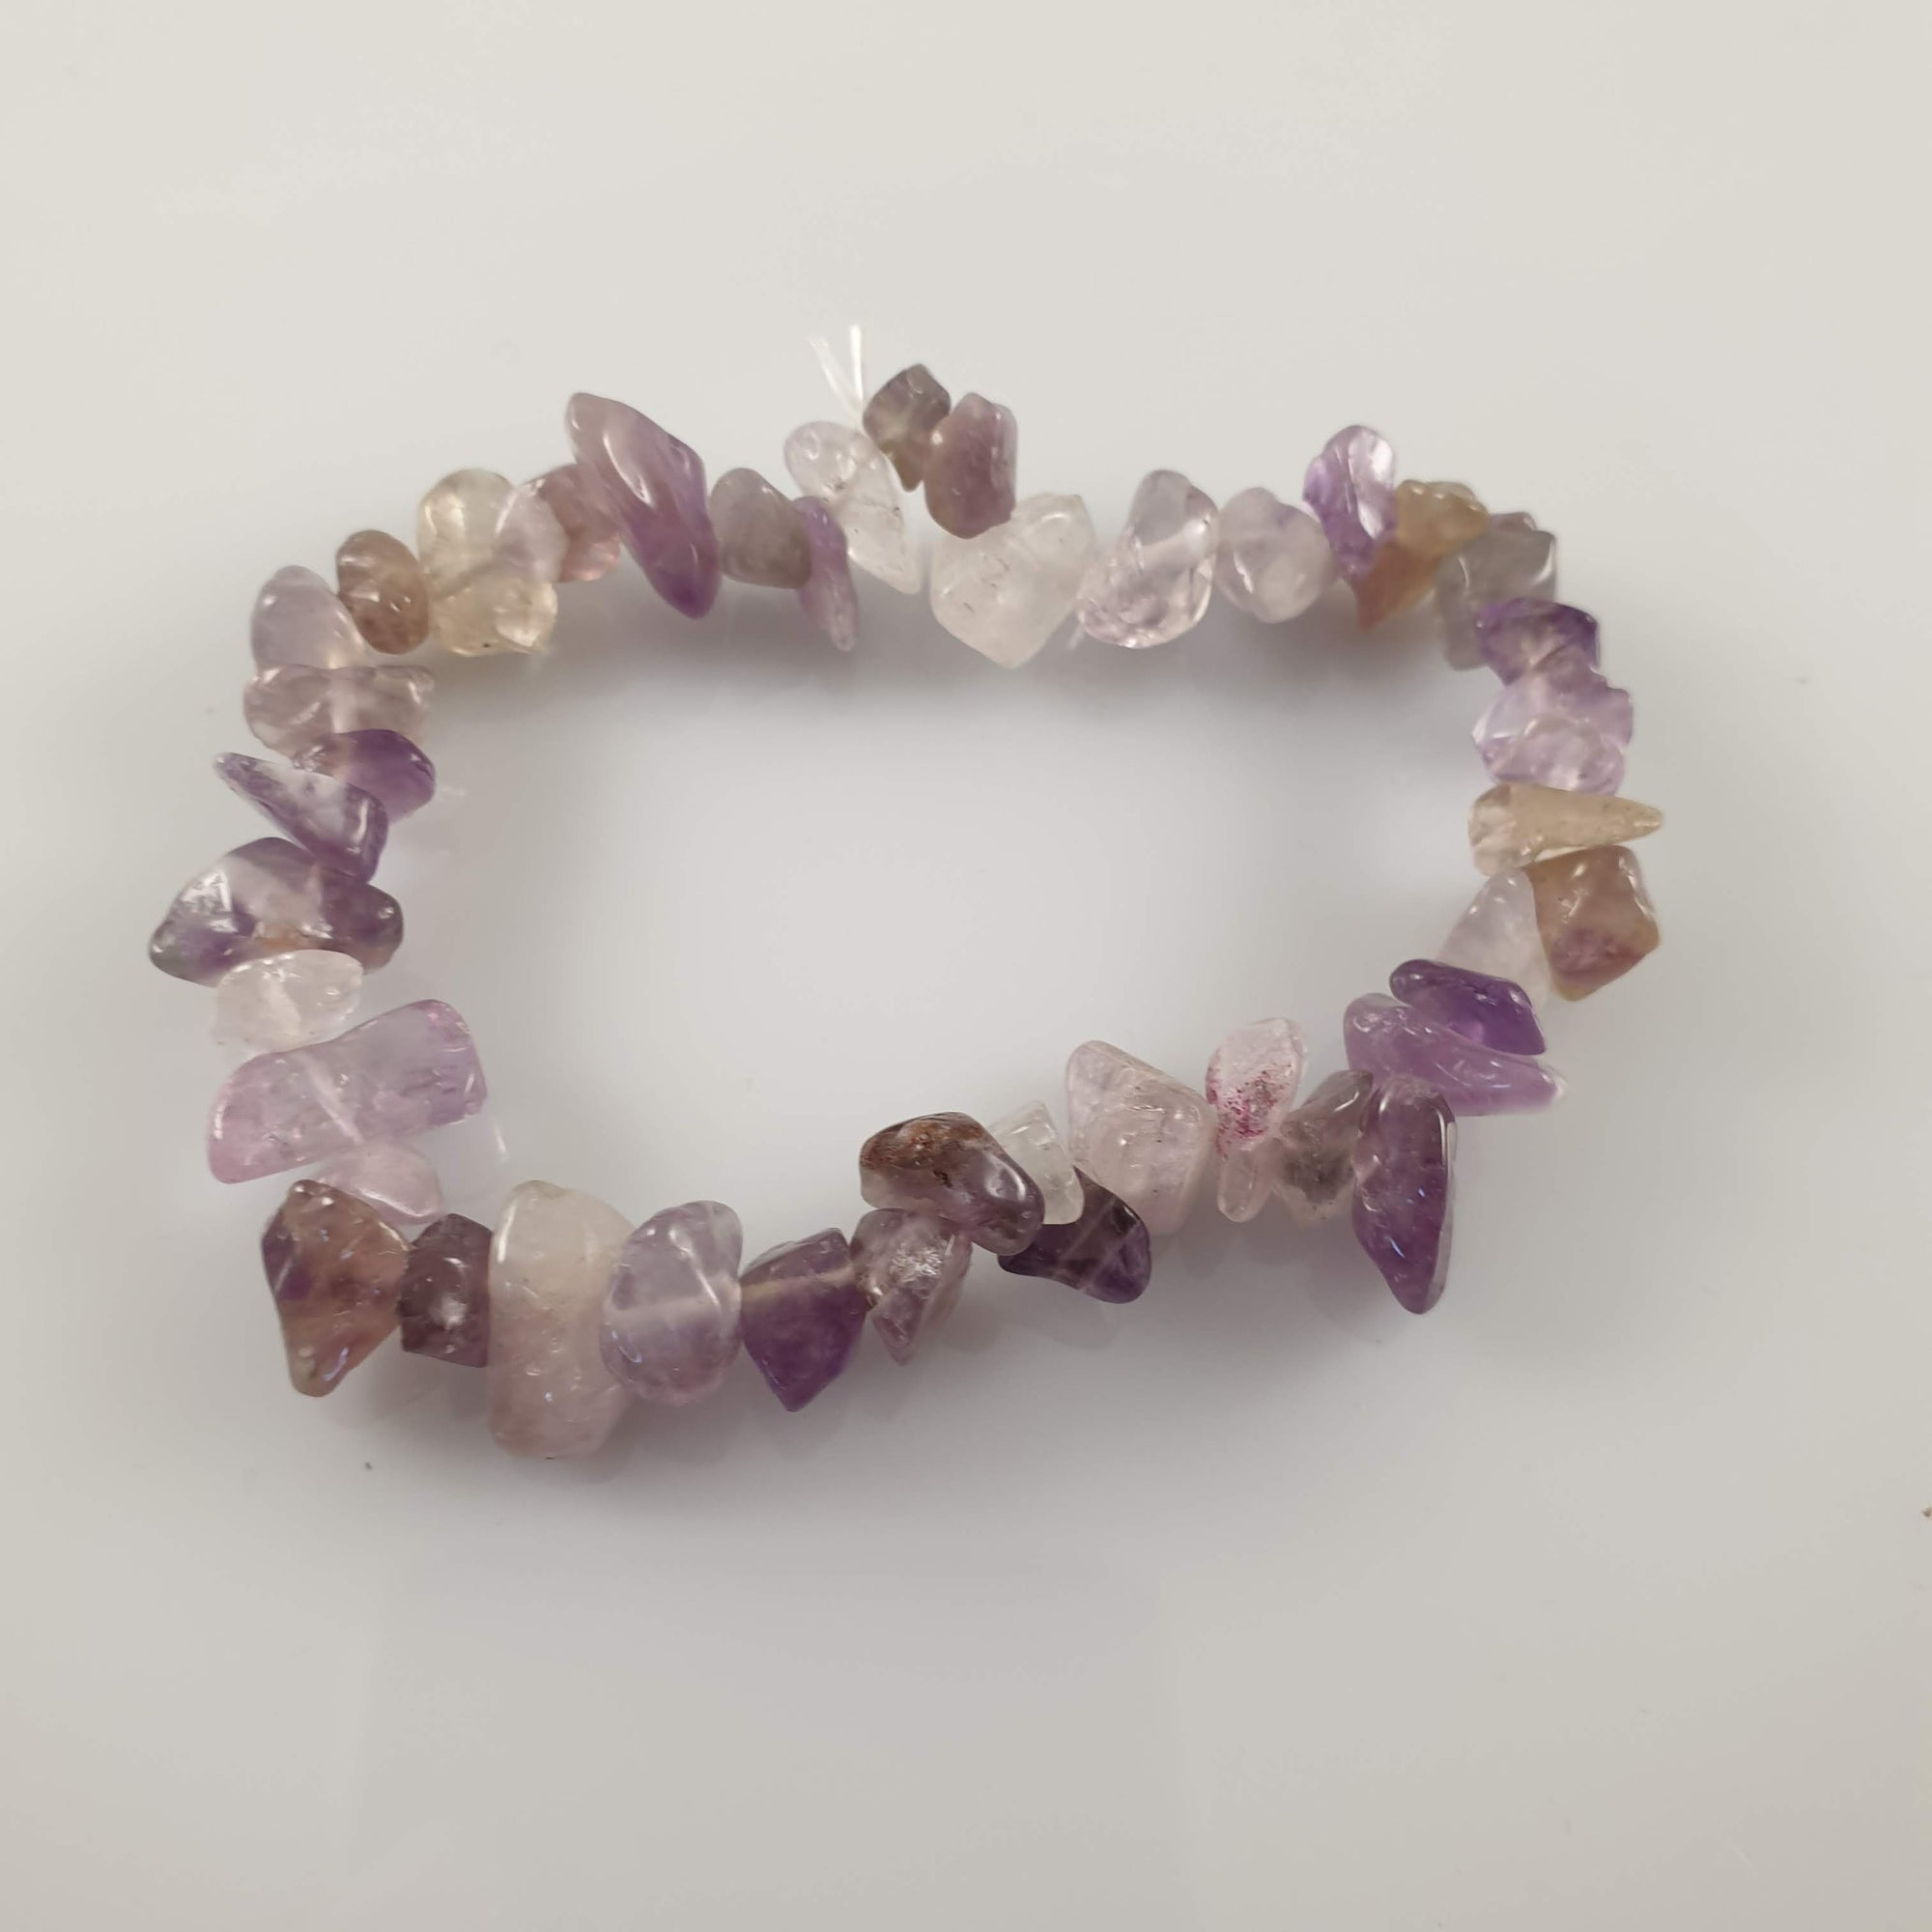 Bright Amethyst Chip Crystal Bracelet - Rivendell Shop